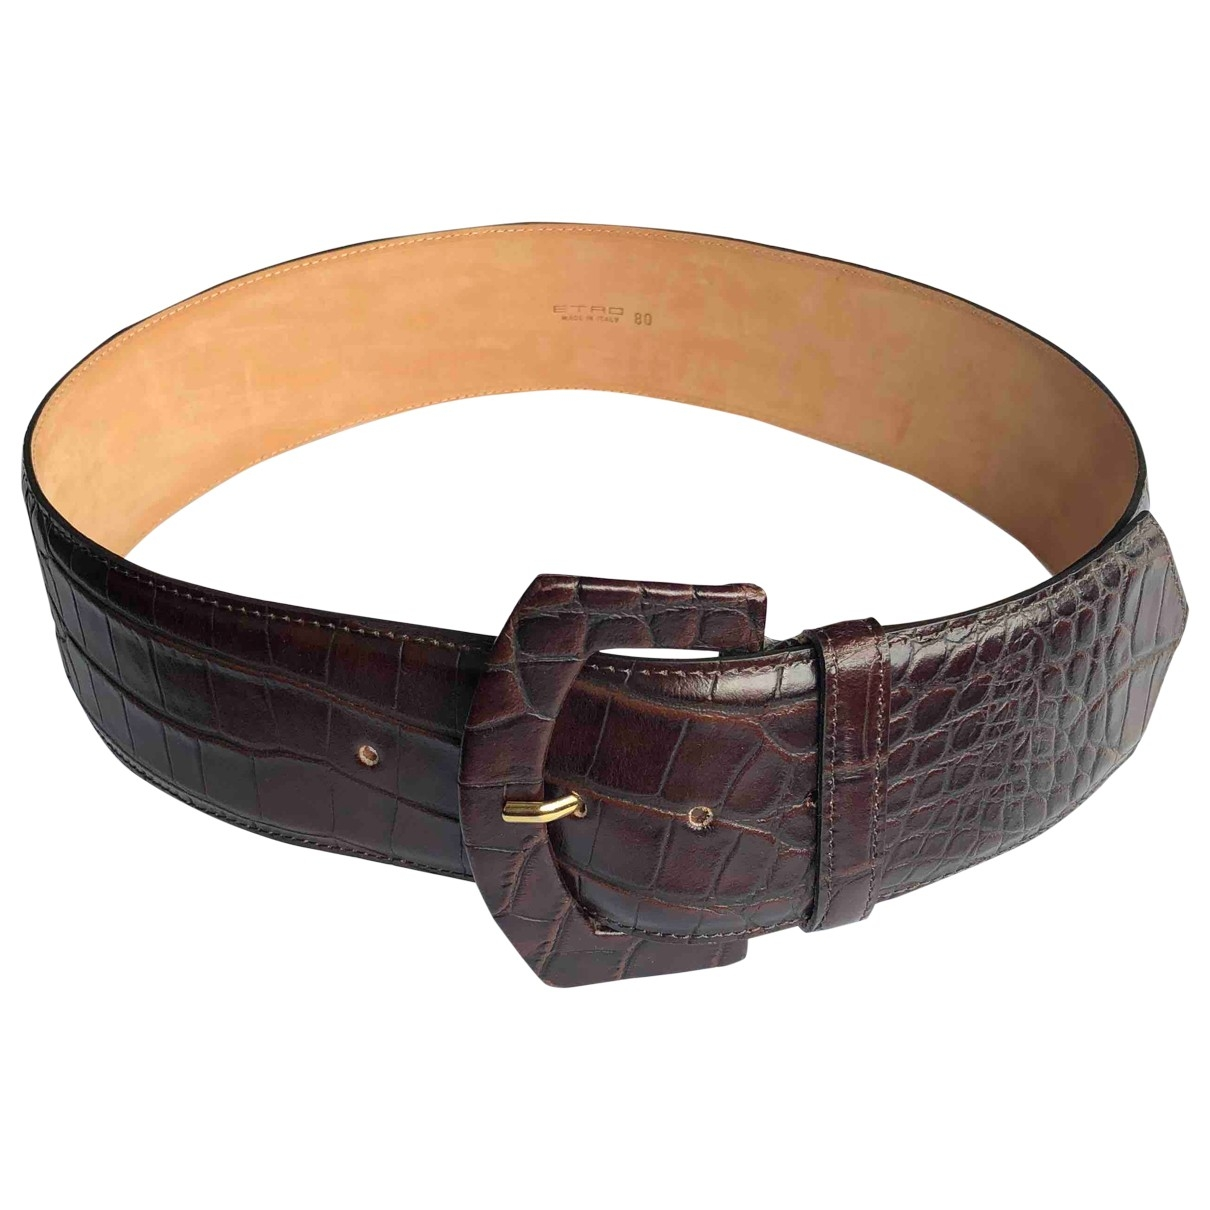 Etro \N Brown Leather belt for Women 80 cm